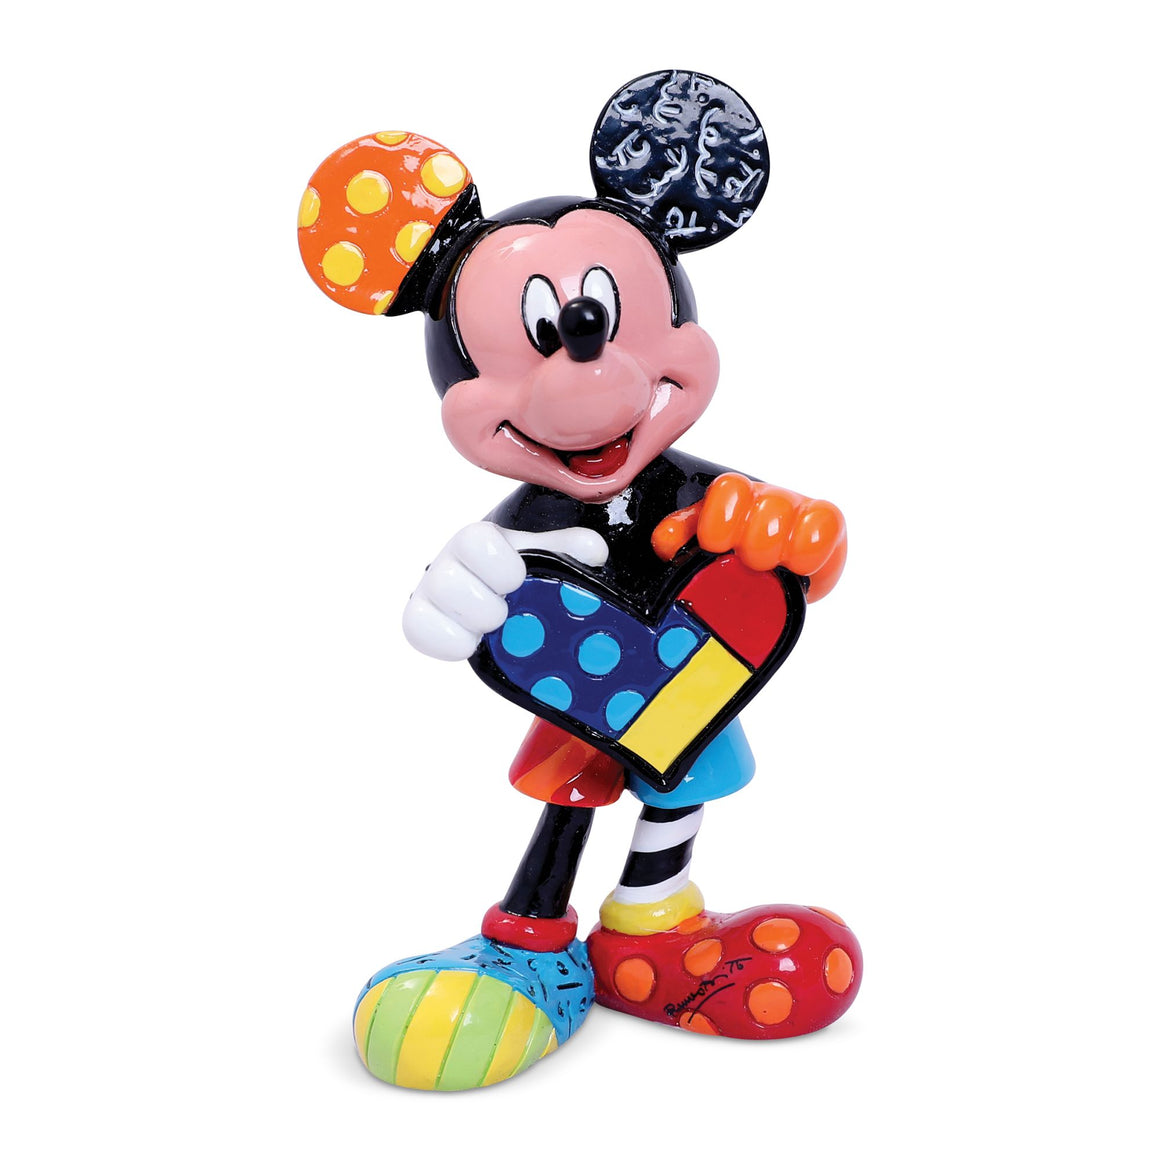 Mickey Mouse with Heart Mini Figurine by Disney Britto